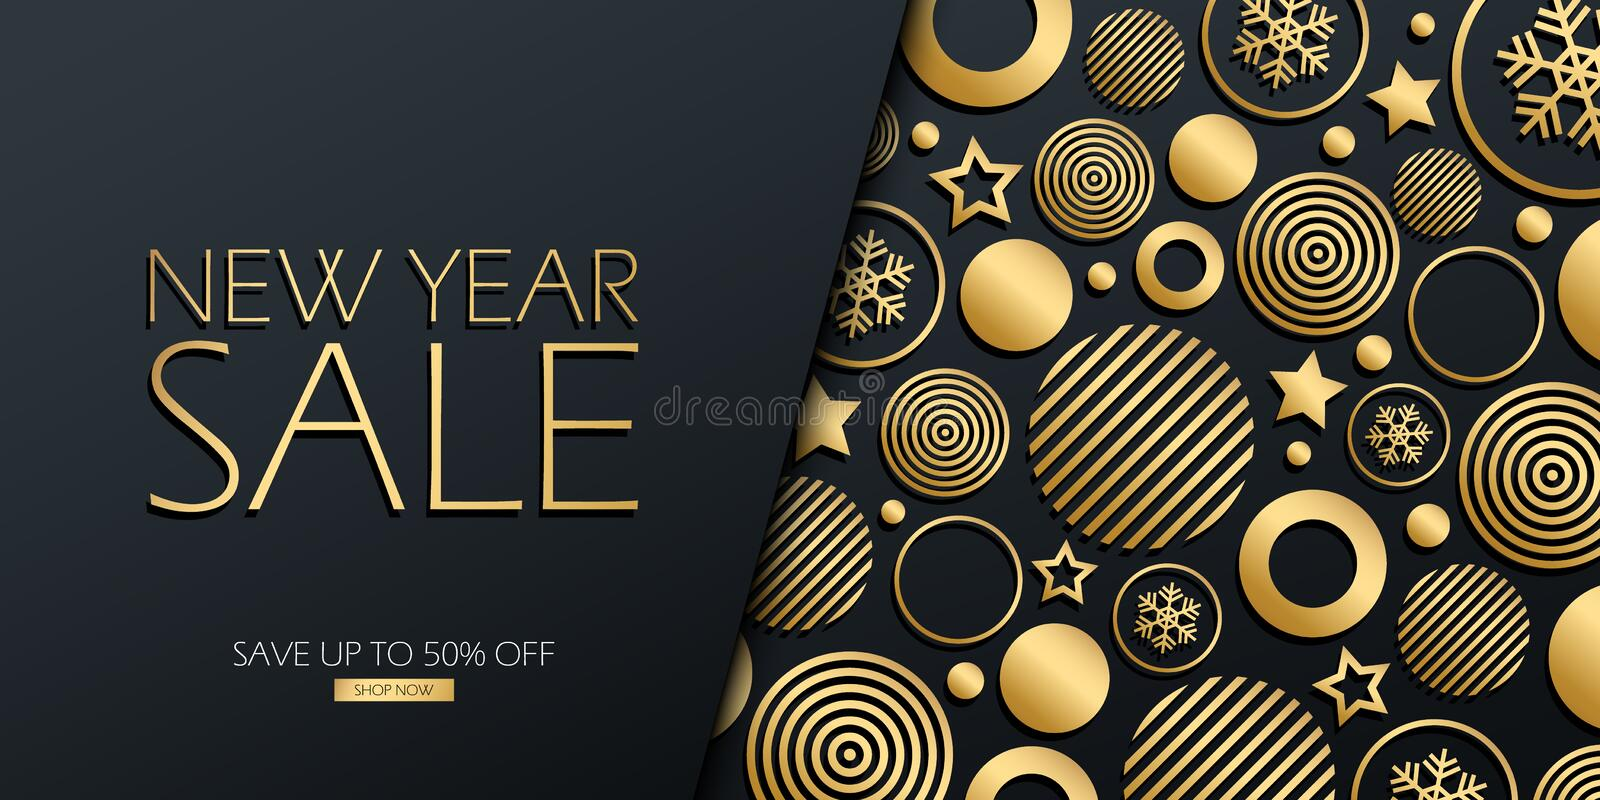 New Year Sale special offer luxury banner with gold colored christmas balls, stars and snowflakes on black background. vector illustration